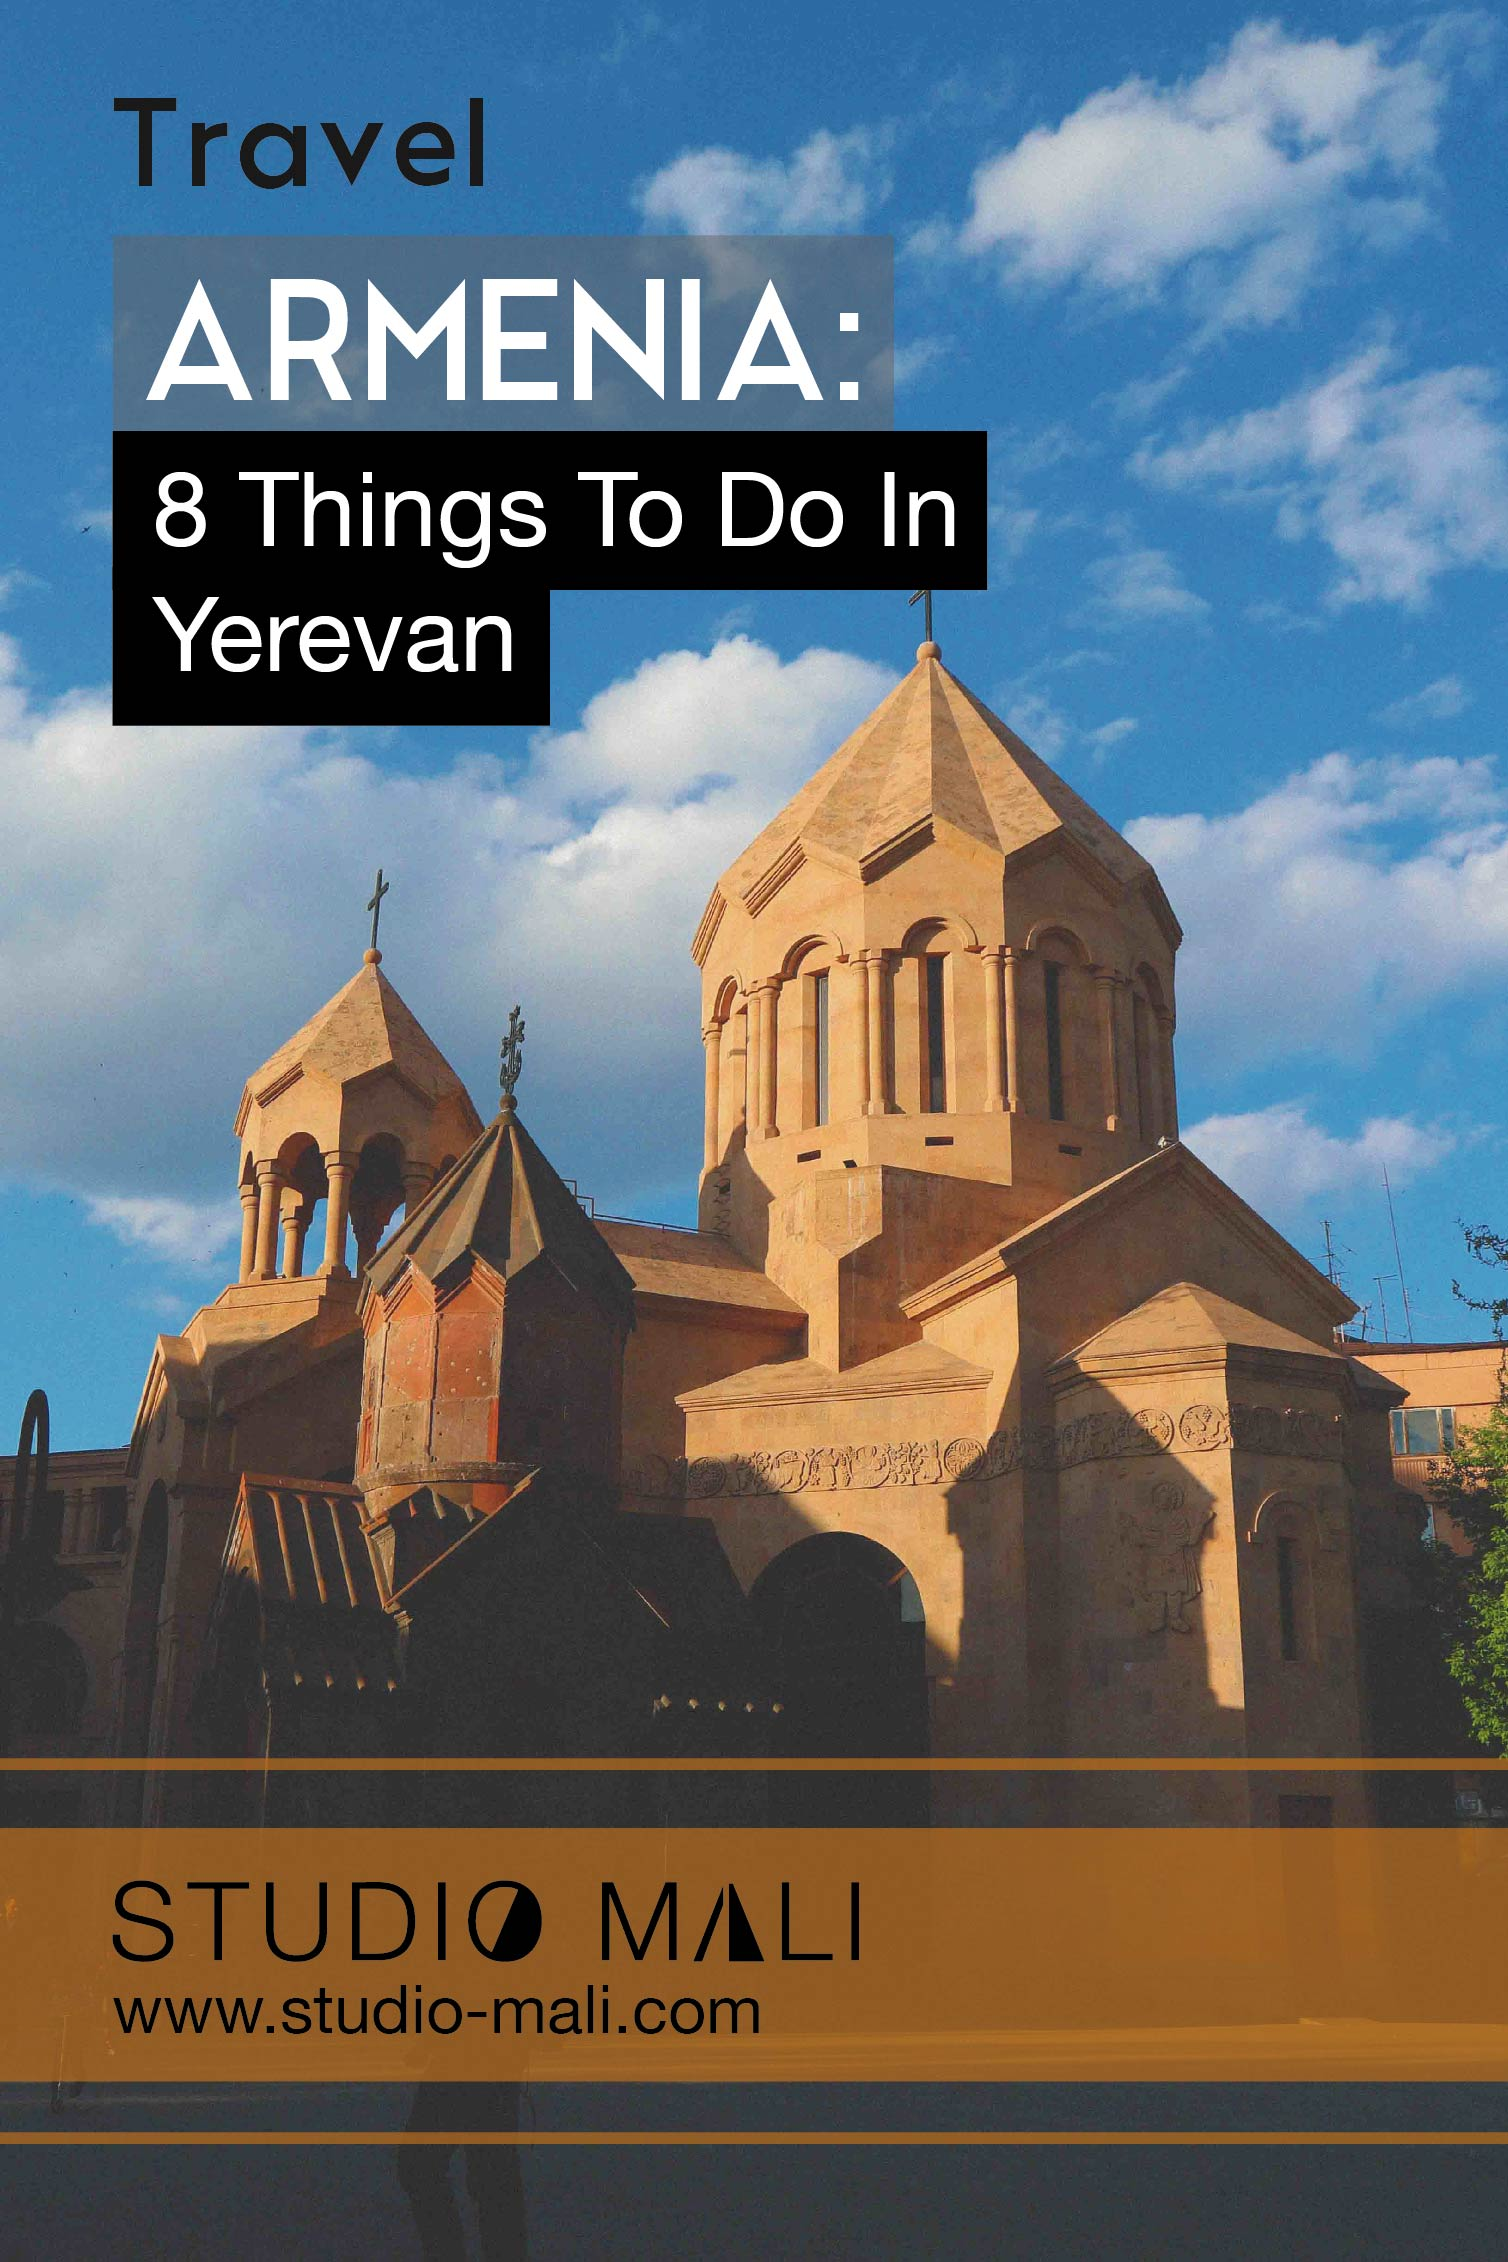 Armenia: 8 Things To Do In Yerevan, by Studio Mali